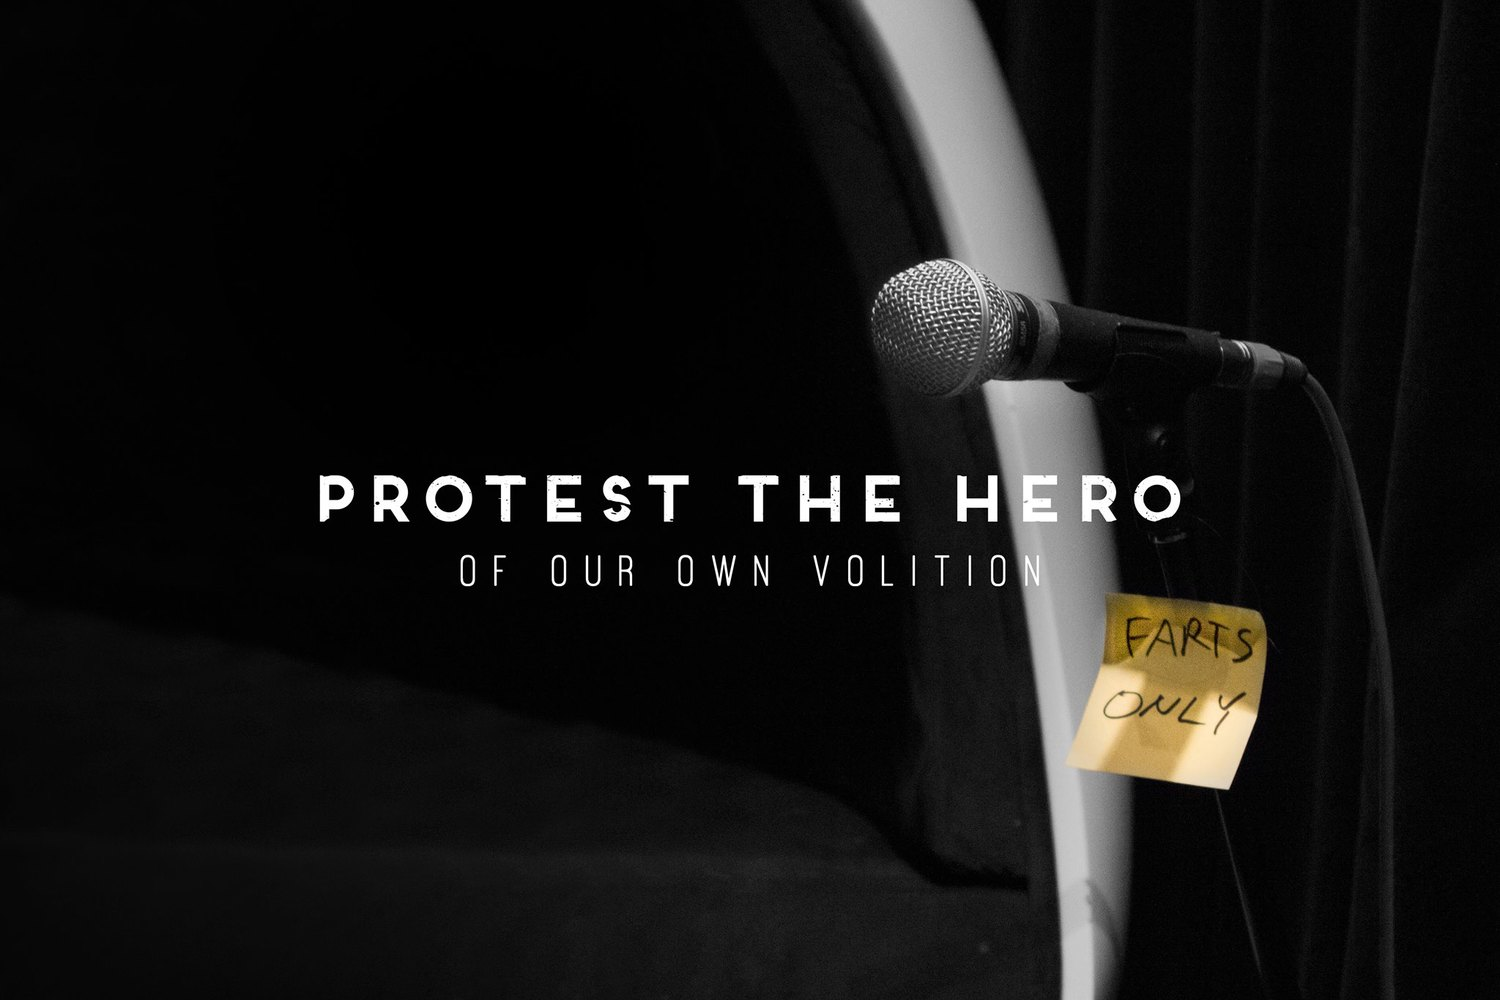 Of Our Own Volition - 6 Part Doc Series - OUT NOW! - Protest The Hero